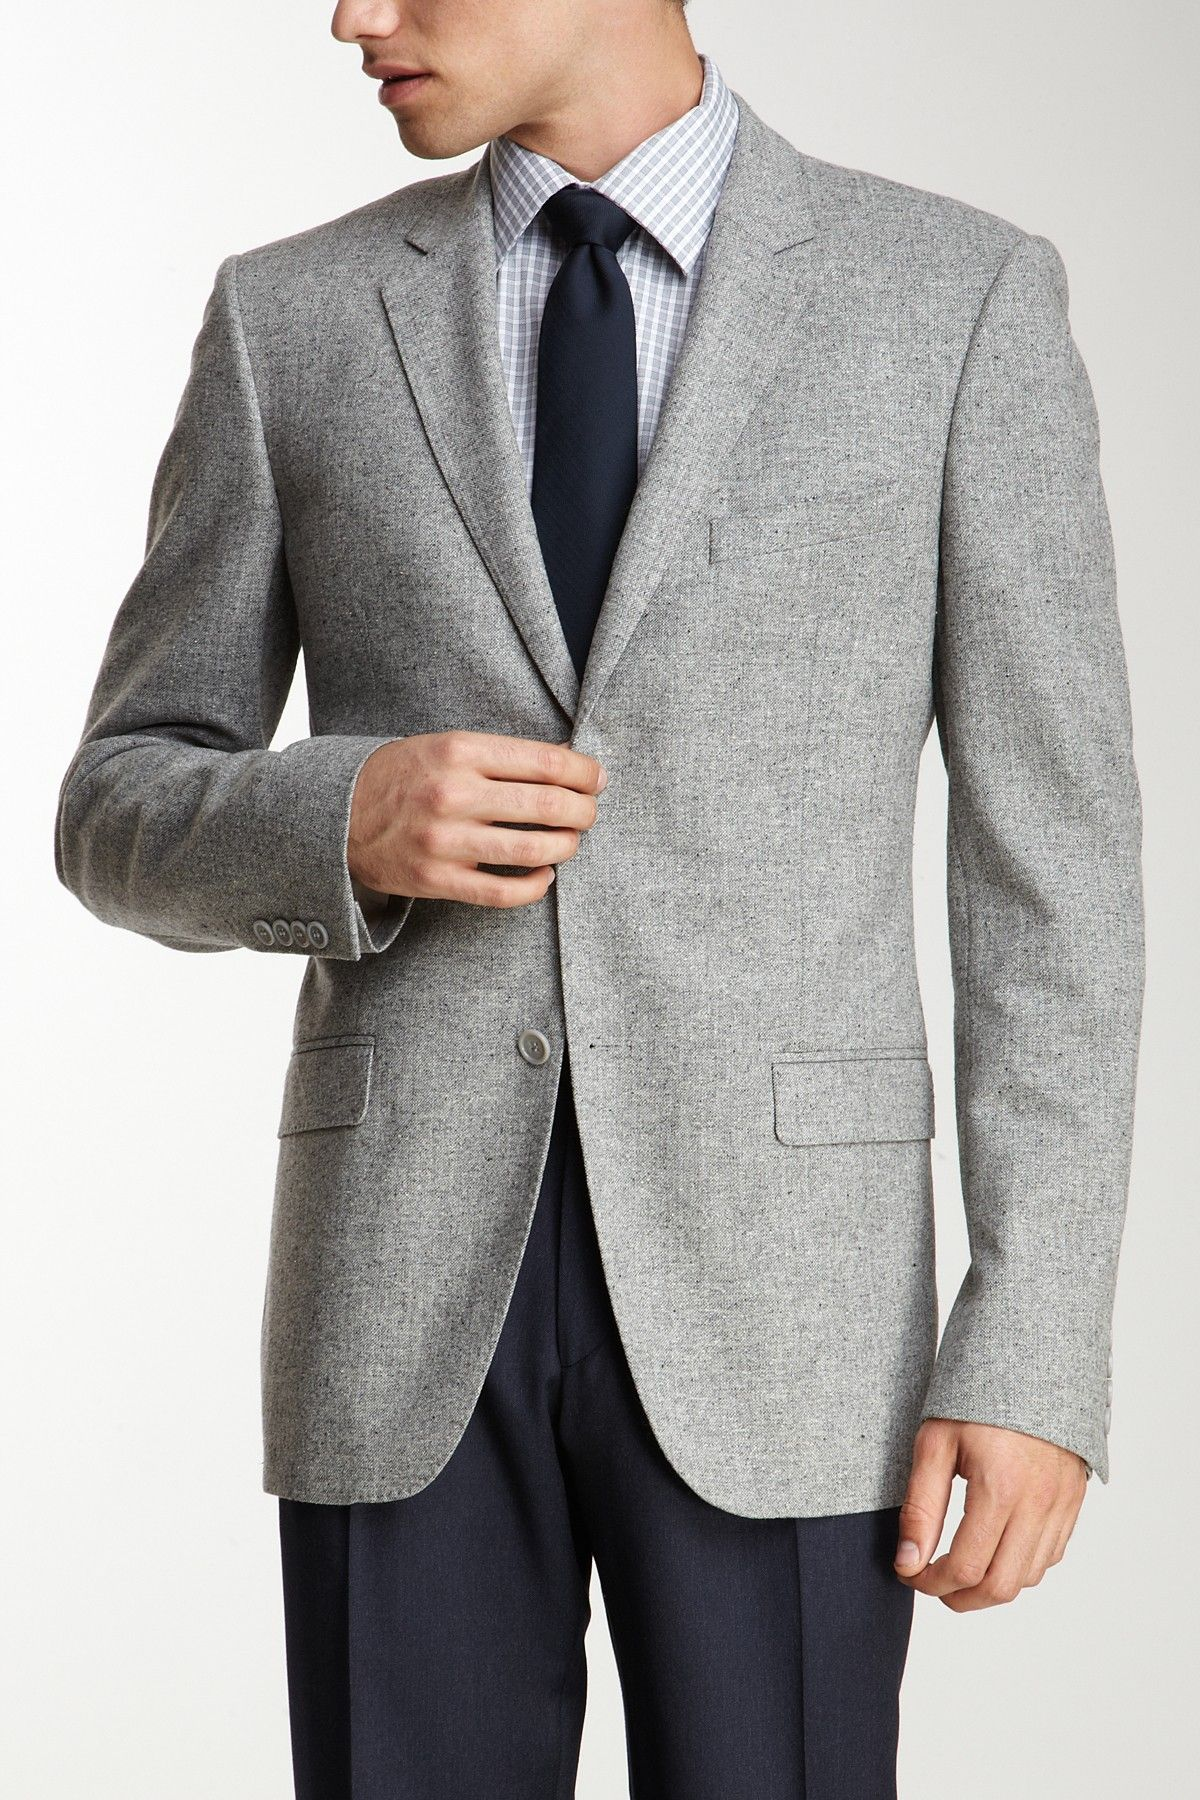 Calvin Klein Light Grey Blazer// | Sessions looks! | Pinterest